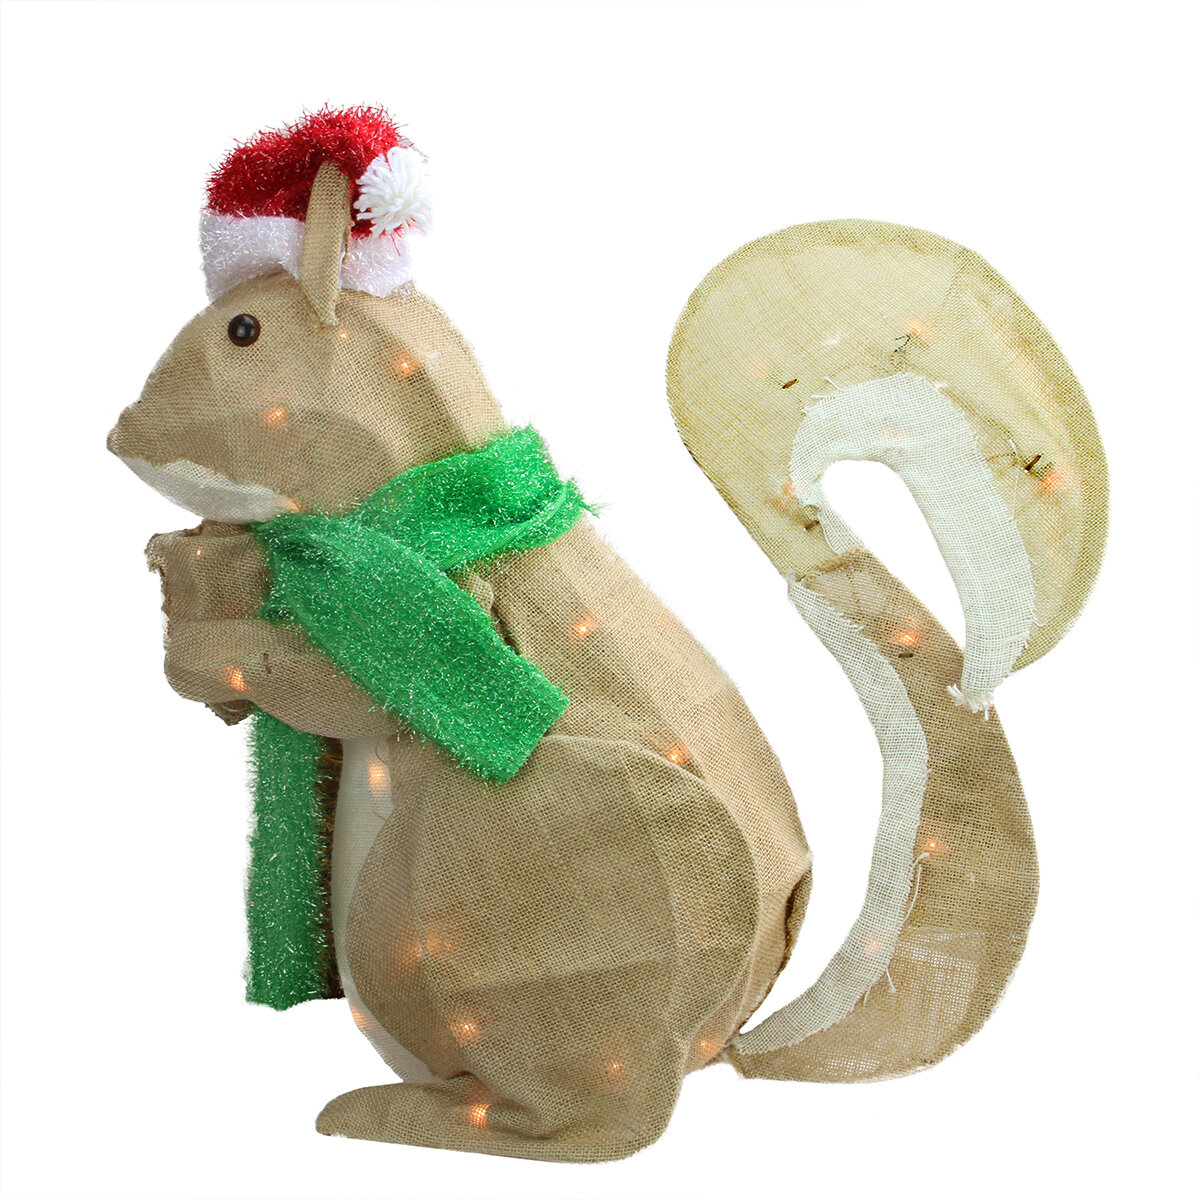 northlight pre lit outdoor burlap squirrel christmas decoration wayfair - Burlap Outdoor Christmas Decorations